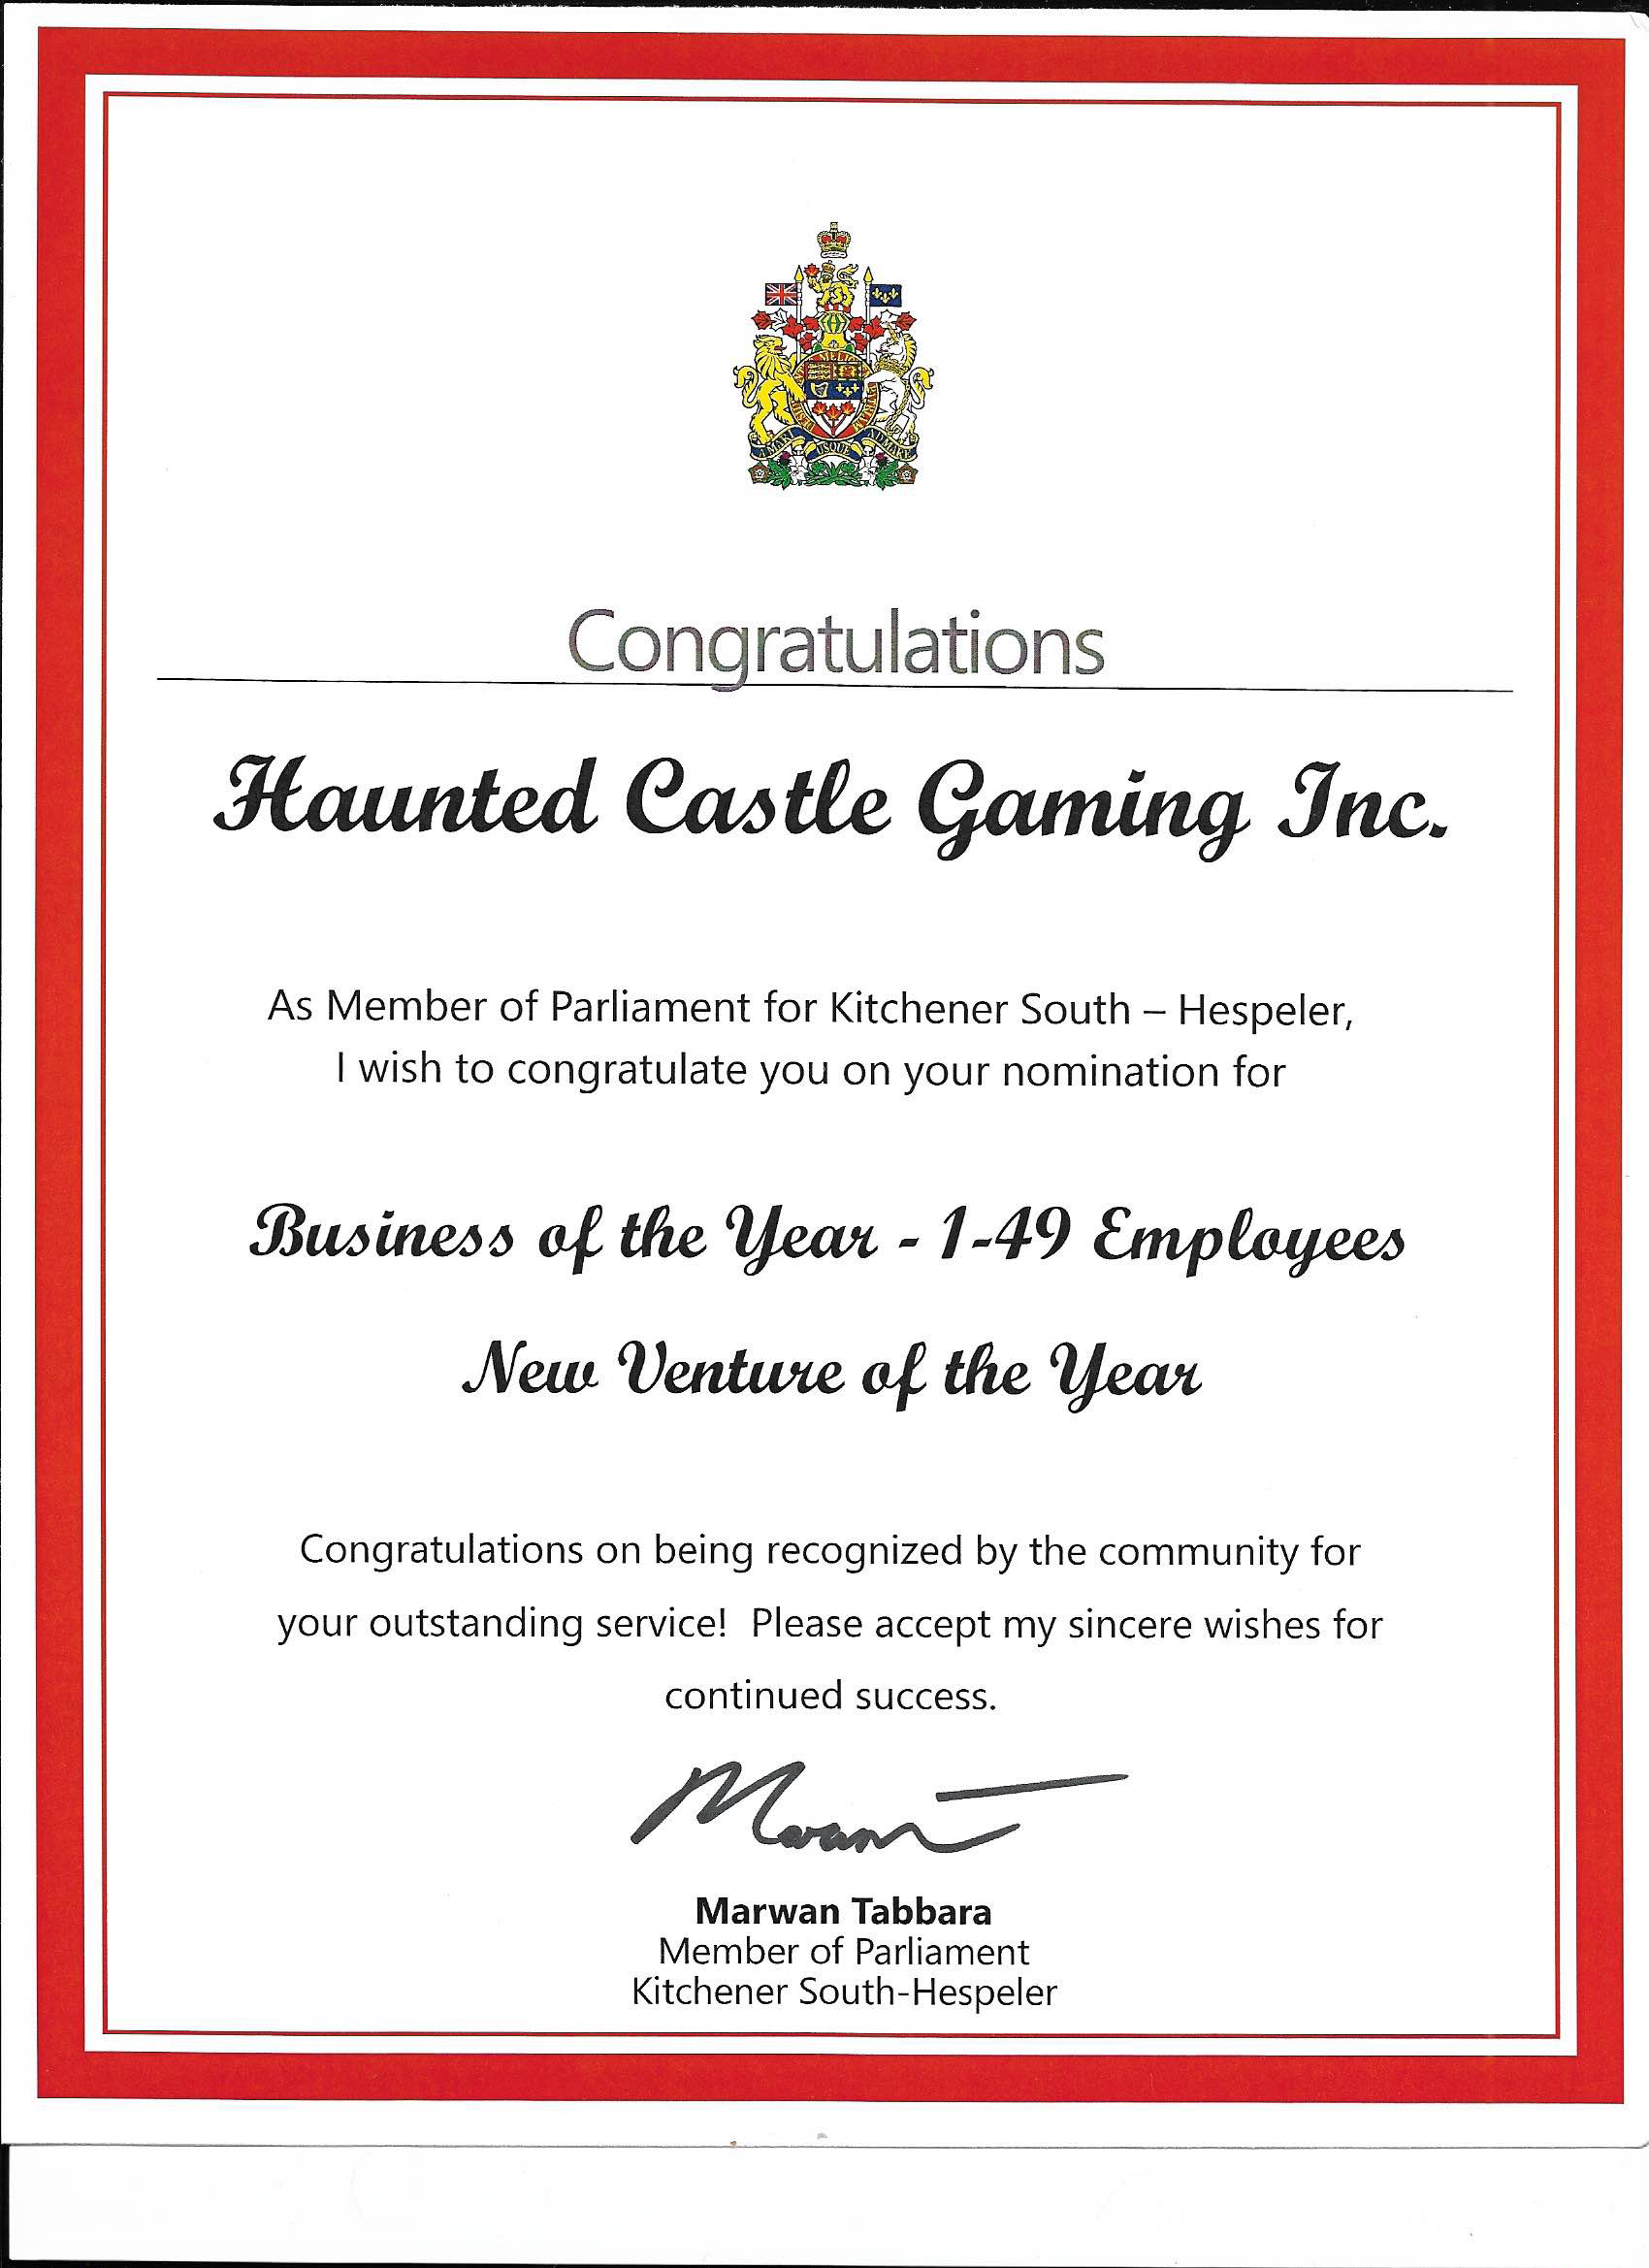 MP - Biz of the year & New Venture of the Year.png